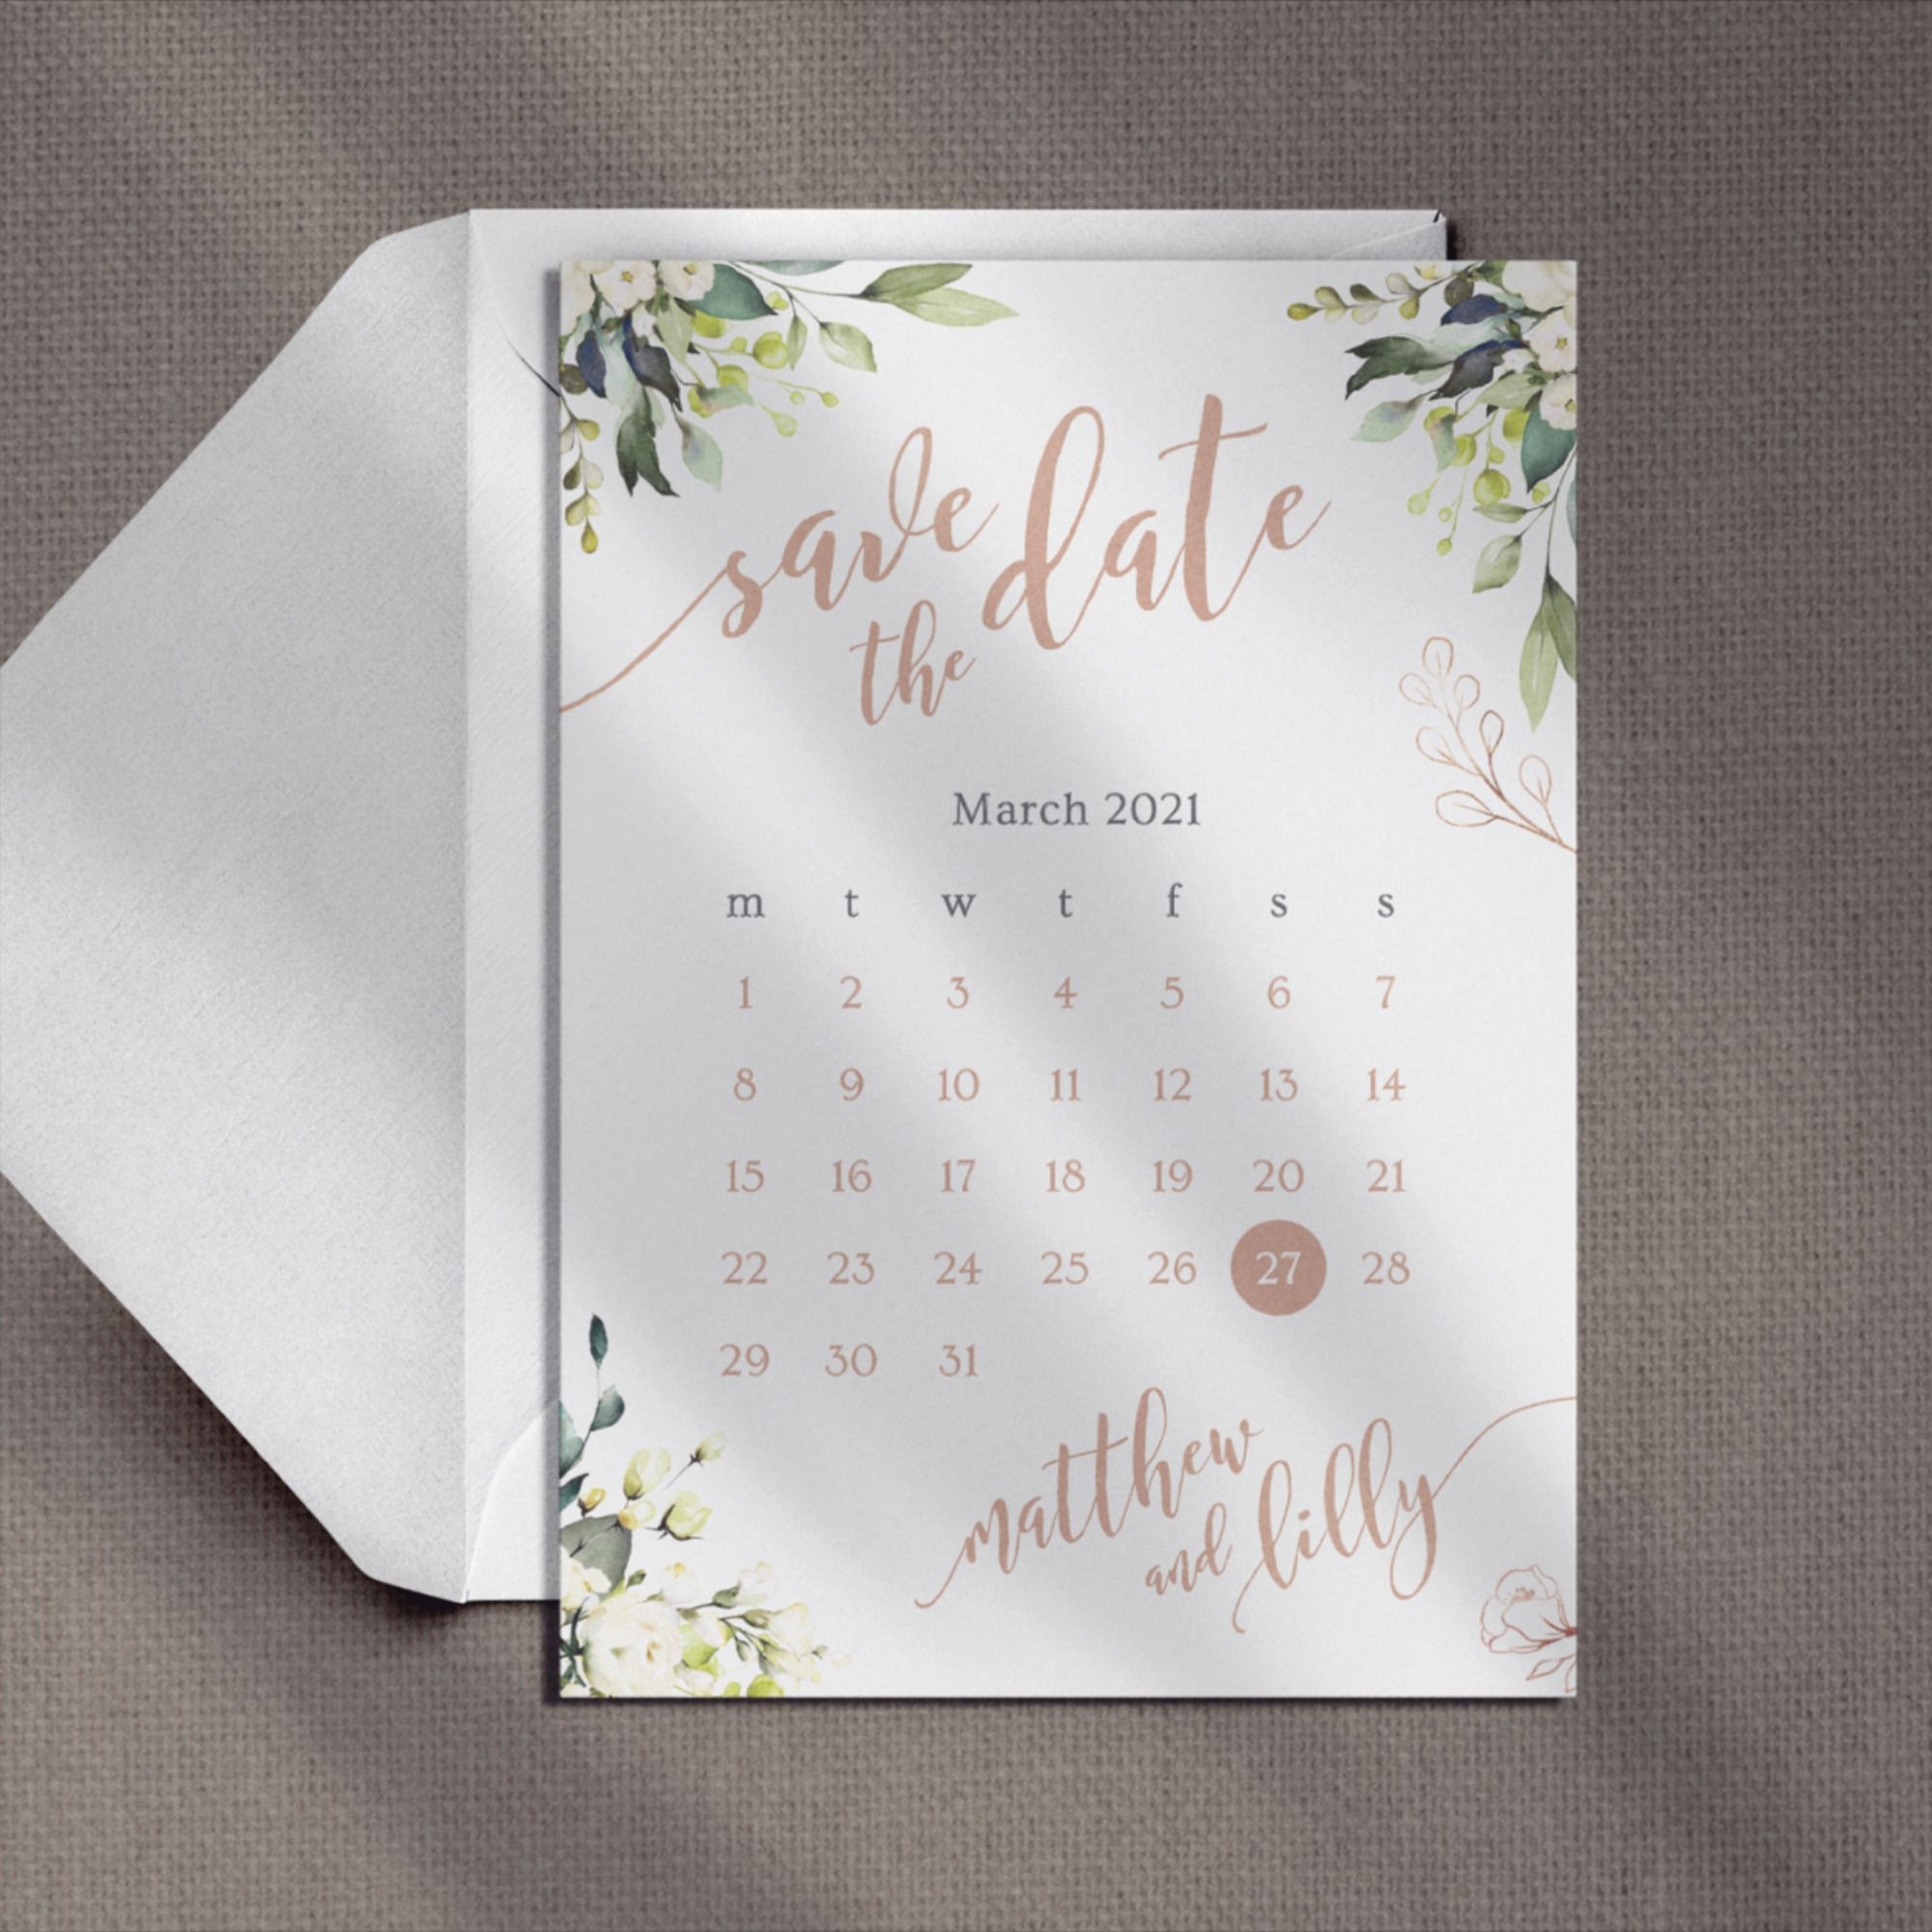 Elegant Calligraphy Watercolour Roses Printed Card Wedding Save the Date Floral Save the Date Eucalyptus Calendar